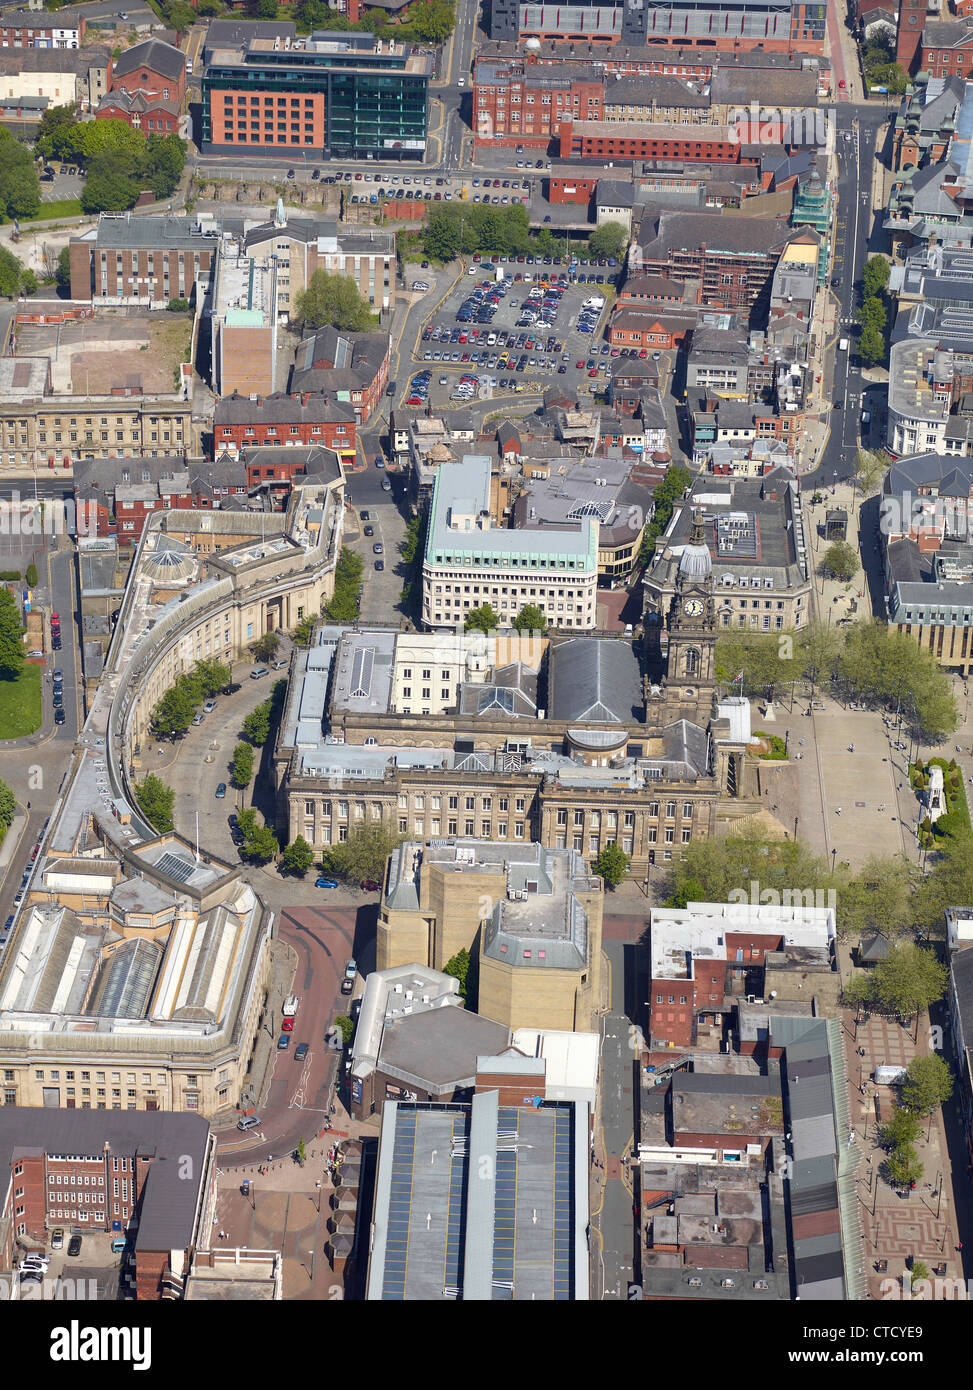 Bolton Town Centre from the air, North West England UK, showing the Town Hall & Civic quarter - Stock Image